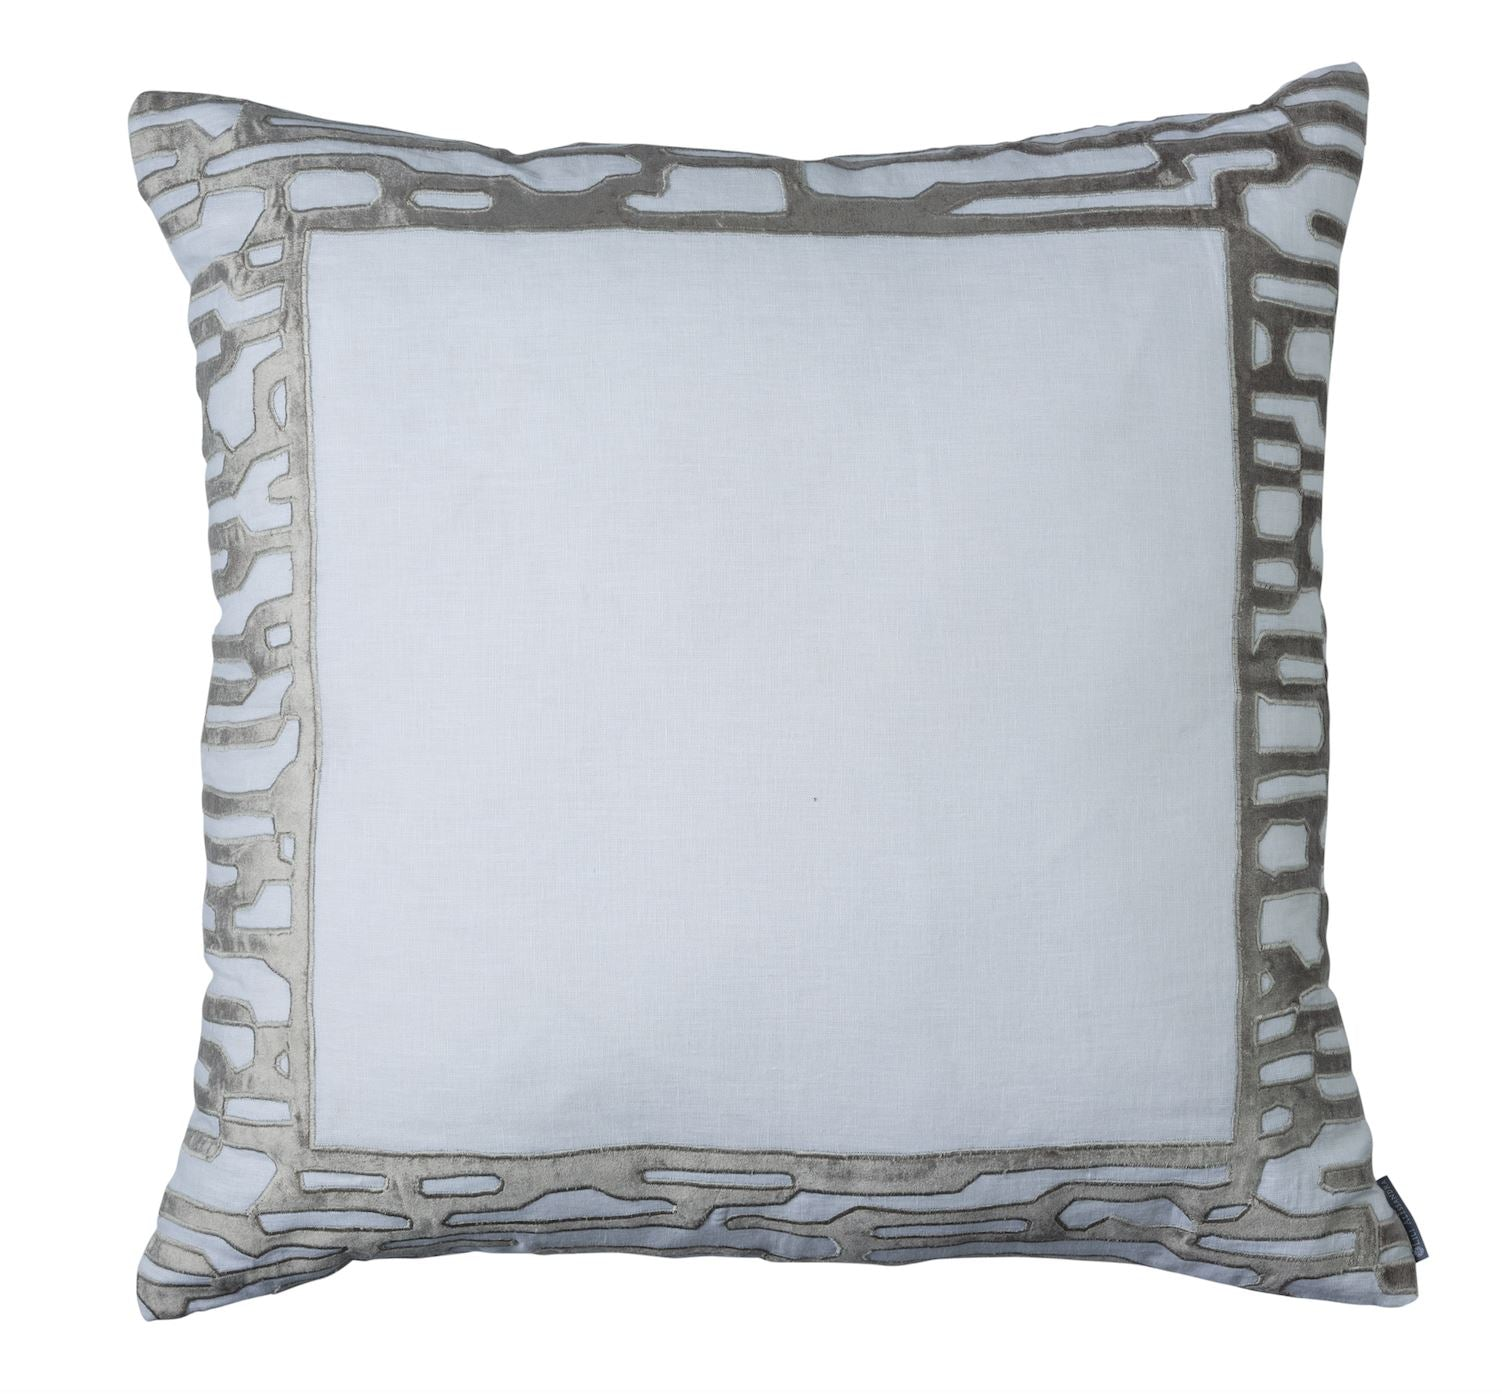 Christian White and Platinum Euro Pillow by Lili Alessandra